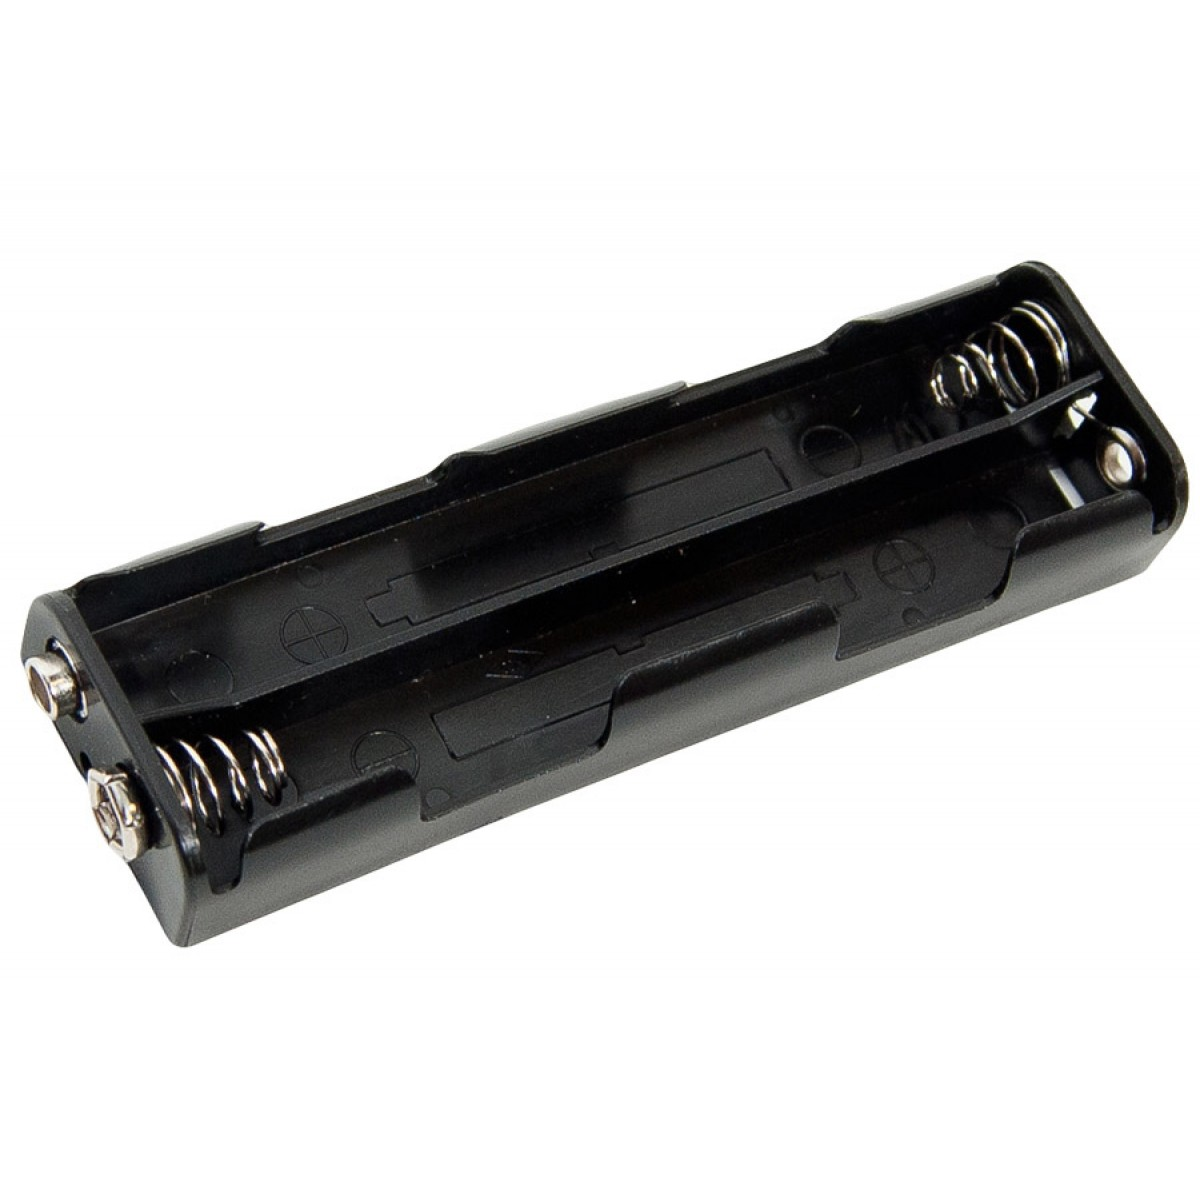 tesoro 4 aa cell battery holder long for sale kellyco. Black Bedroom Furniture Sets. Home Design Ideas